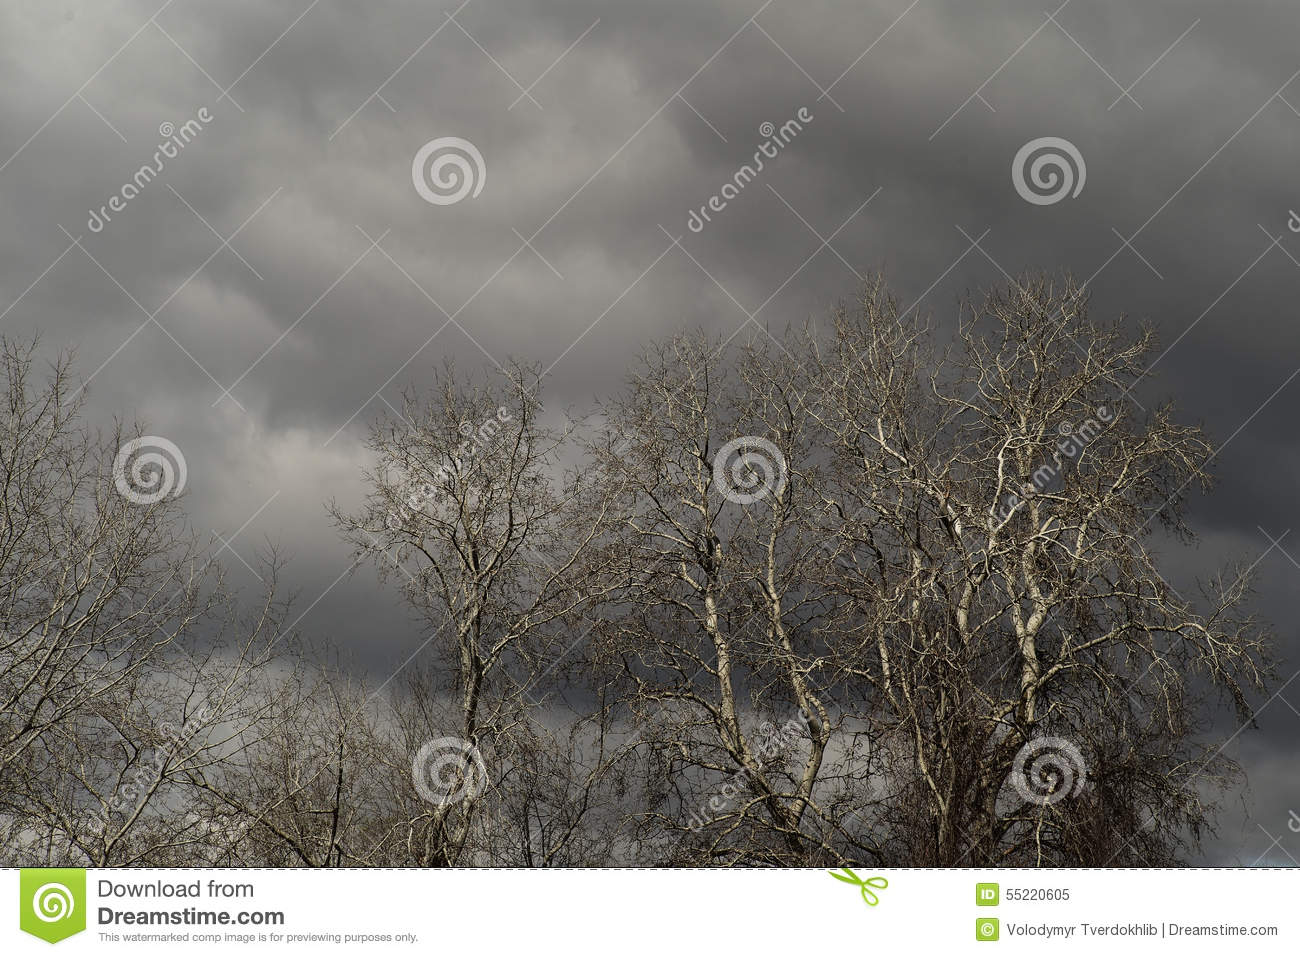 Leafless trees and grey clouds